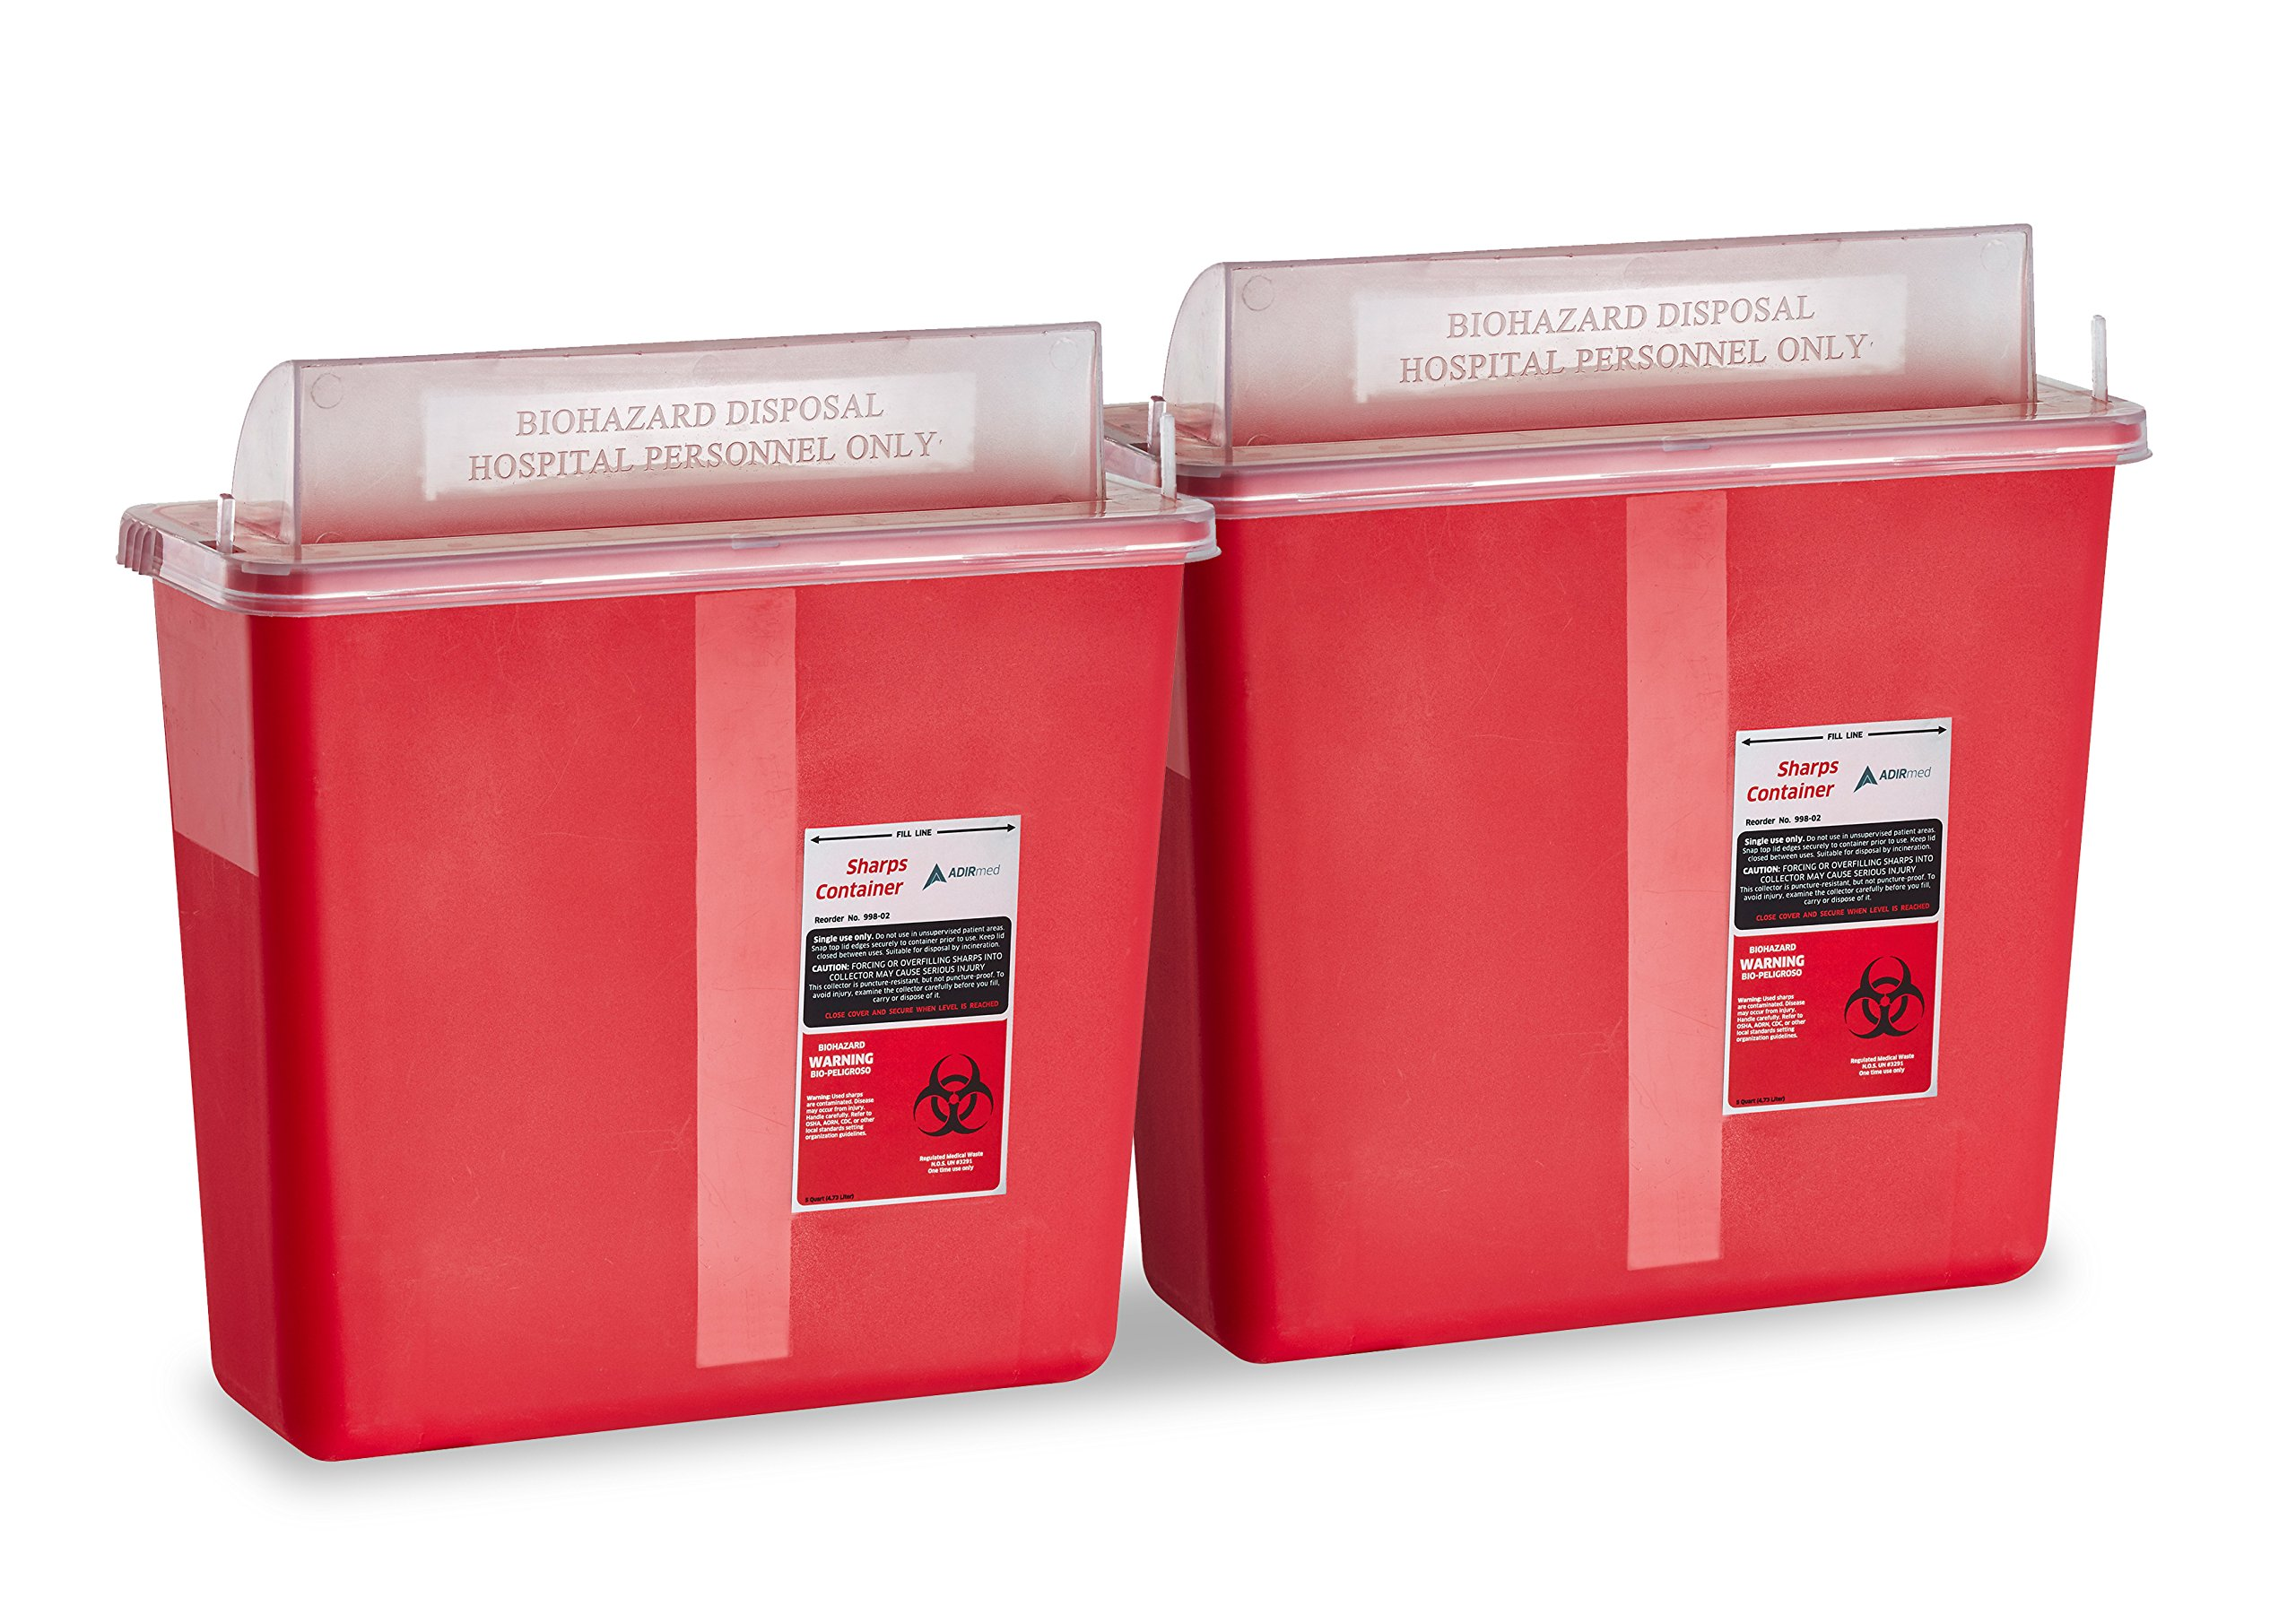 AdirMed Sharps & Needle Biohazard Disposal Container - 5 Quart - Mailbox Style Horizontal Lid - 2 Pack by Adir Med (Image #1)